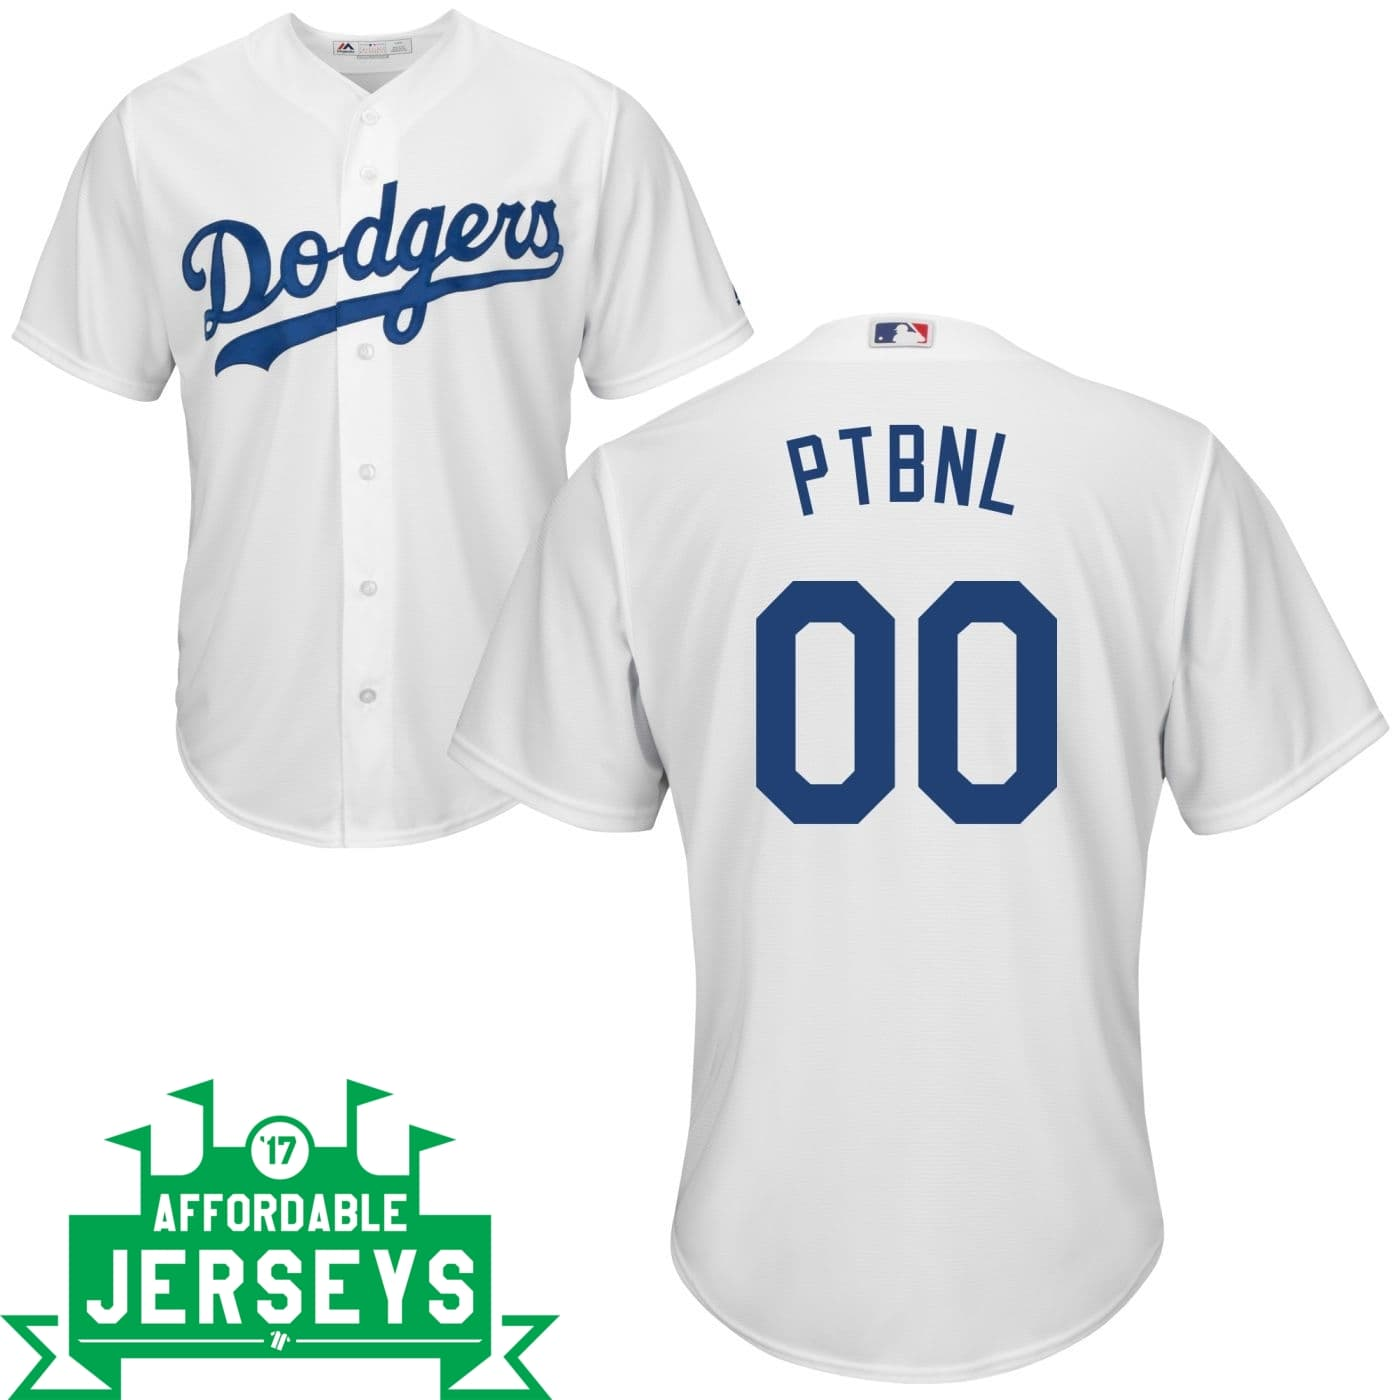 Dodgers PTBNL Home Cool Base Player Jersey